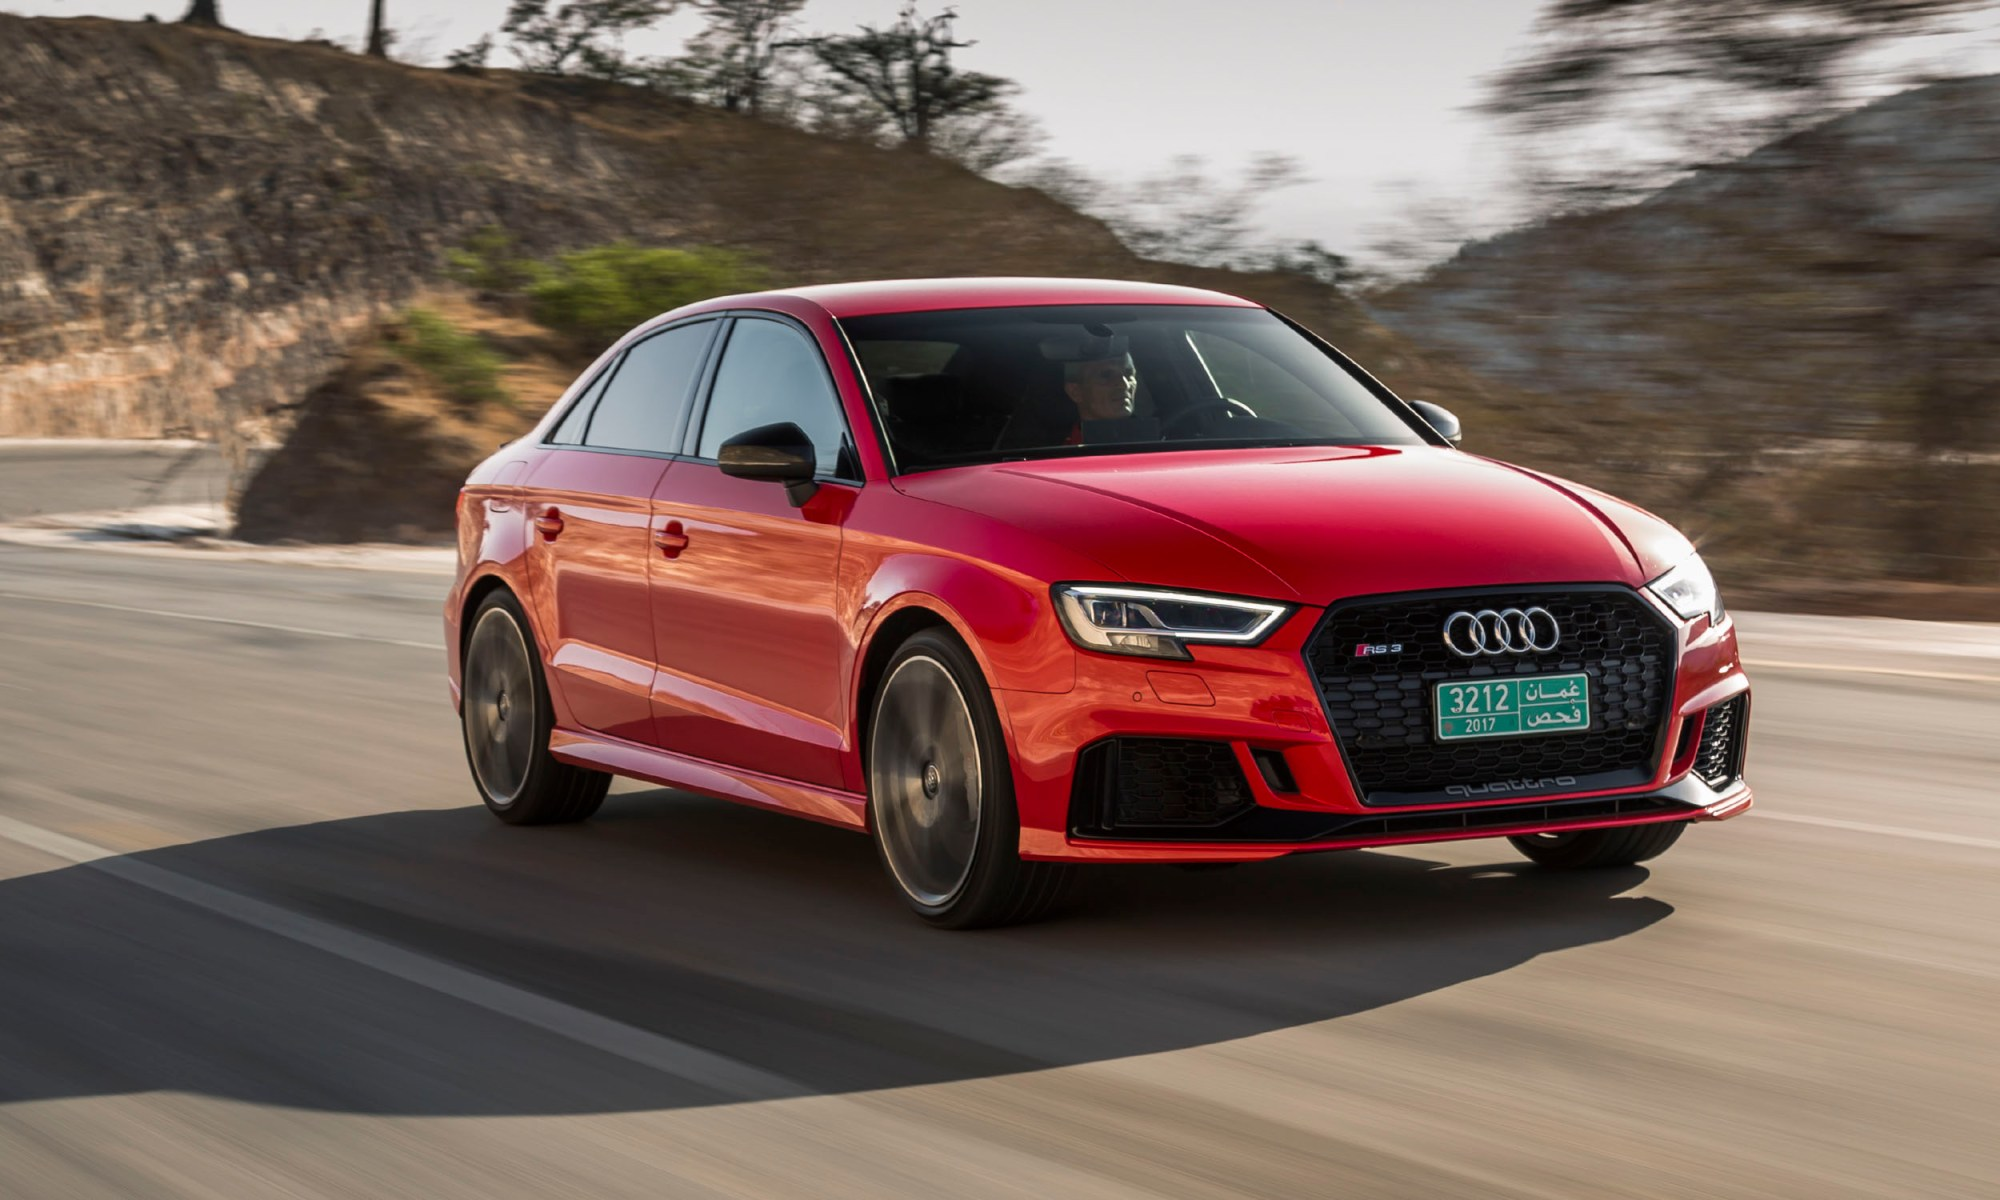 hight resolution of number of vehicles affected 3 326 report date february 13 2019 issue volkswagen group of america inc volkswagen is recalling certain 2018 audi a3